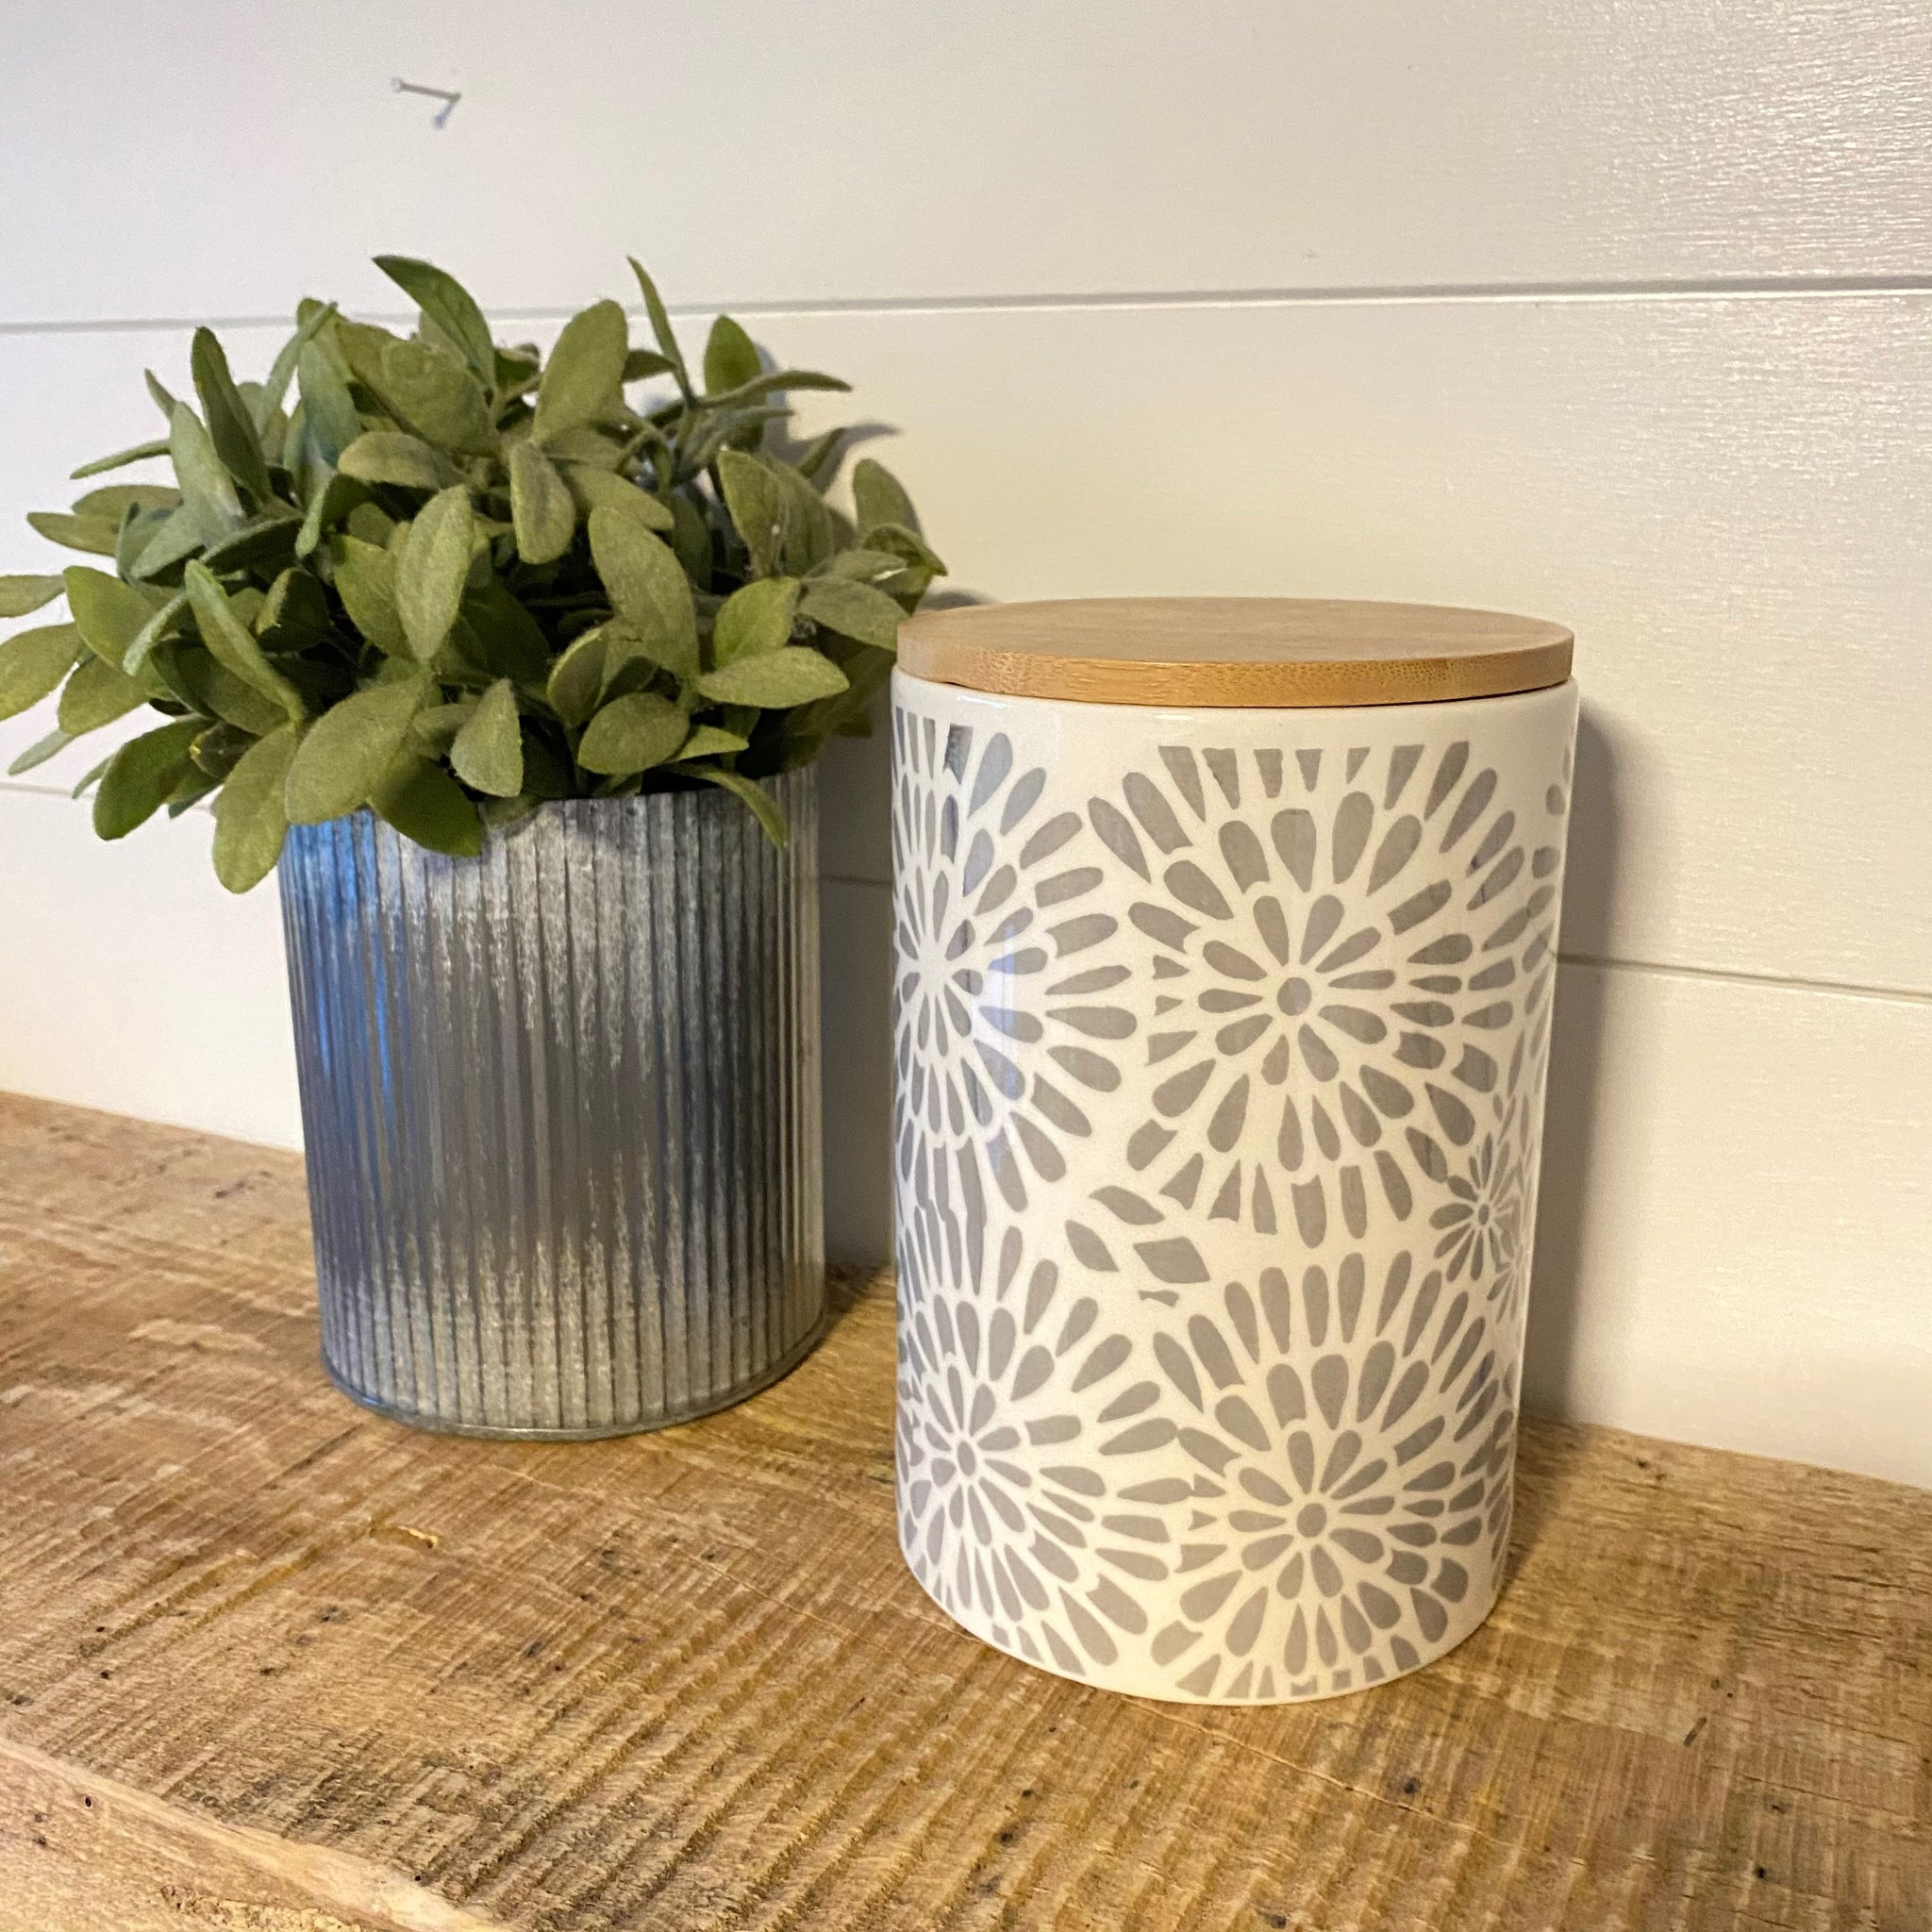 White & Grey Pattern Ceramic Canister with Bamboo Lid - Engraved